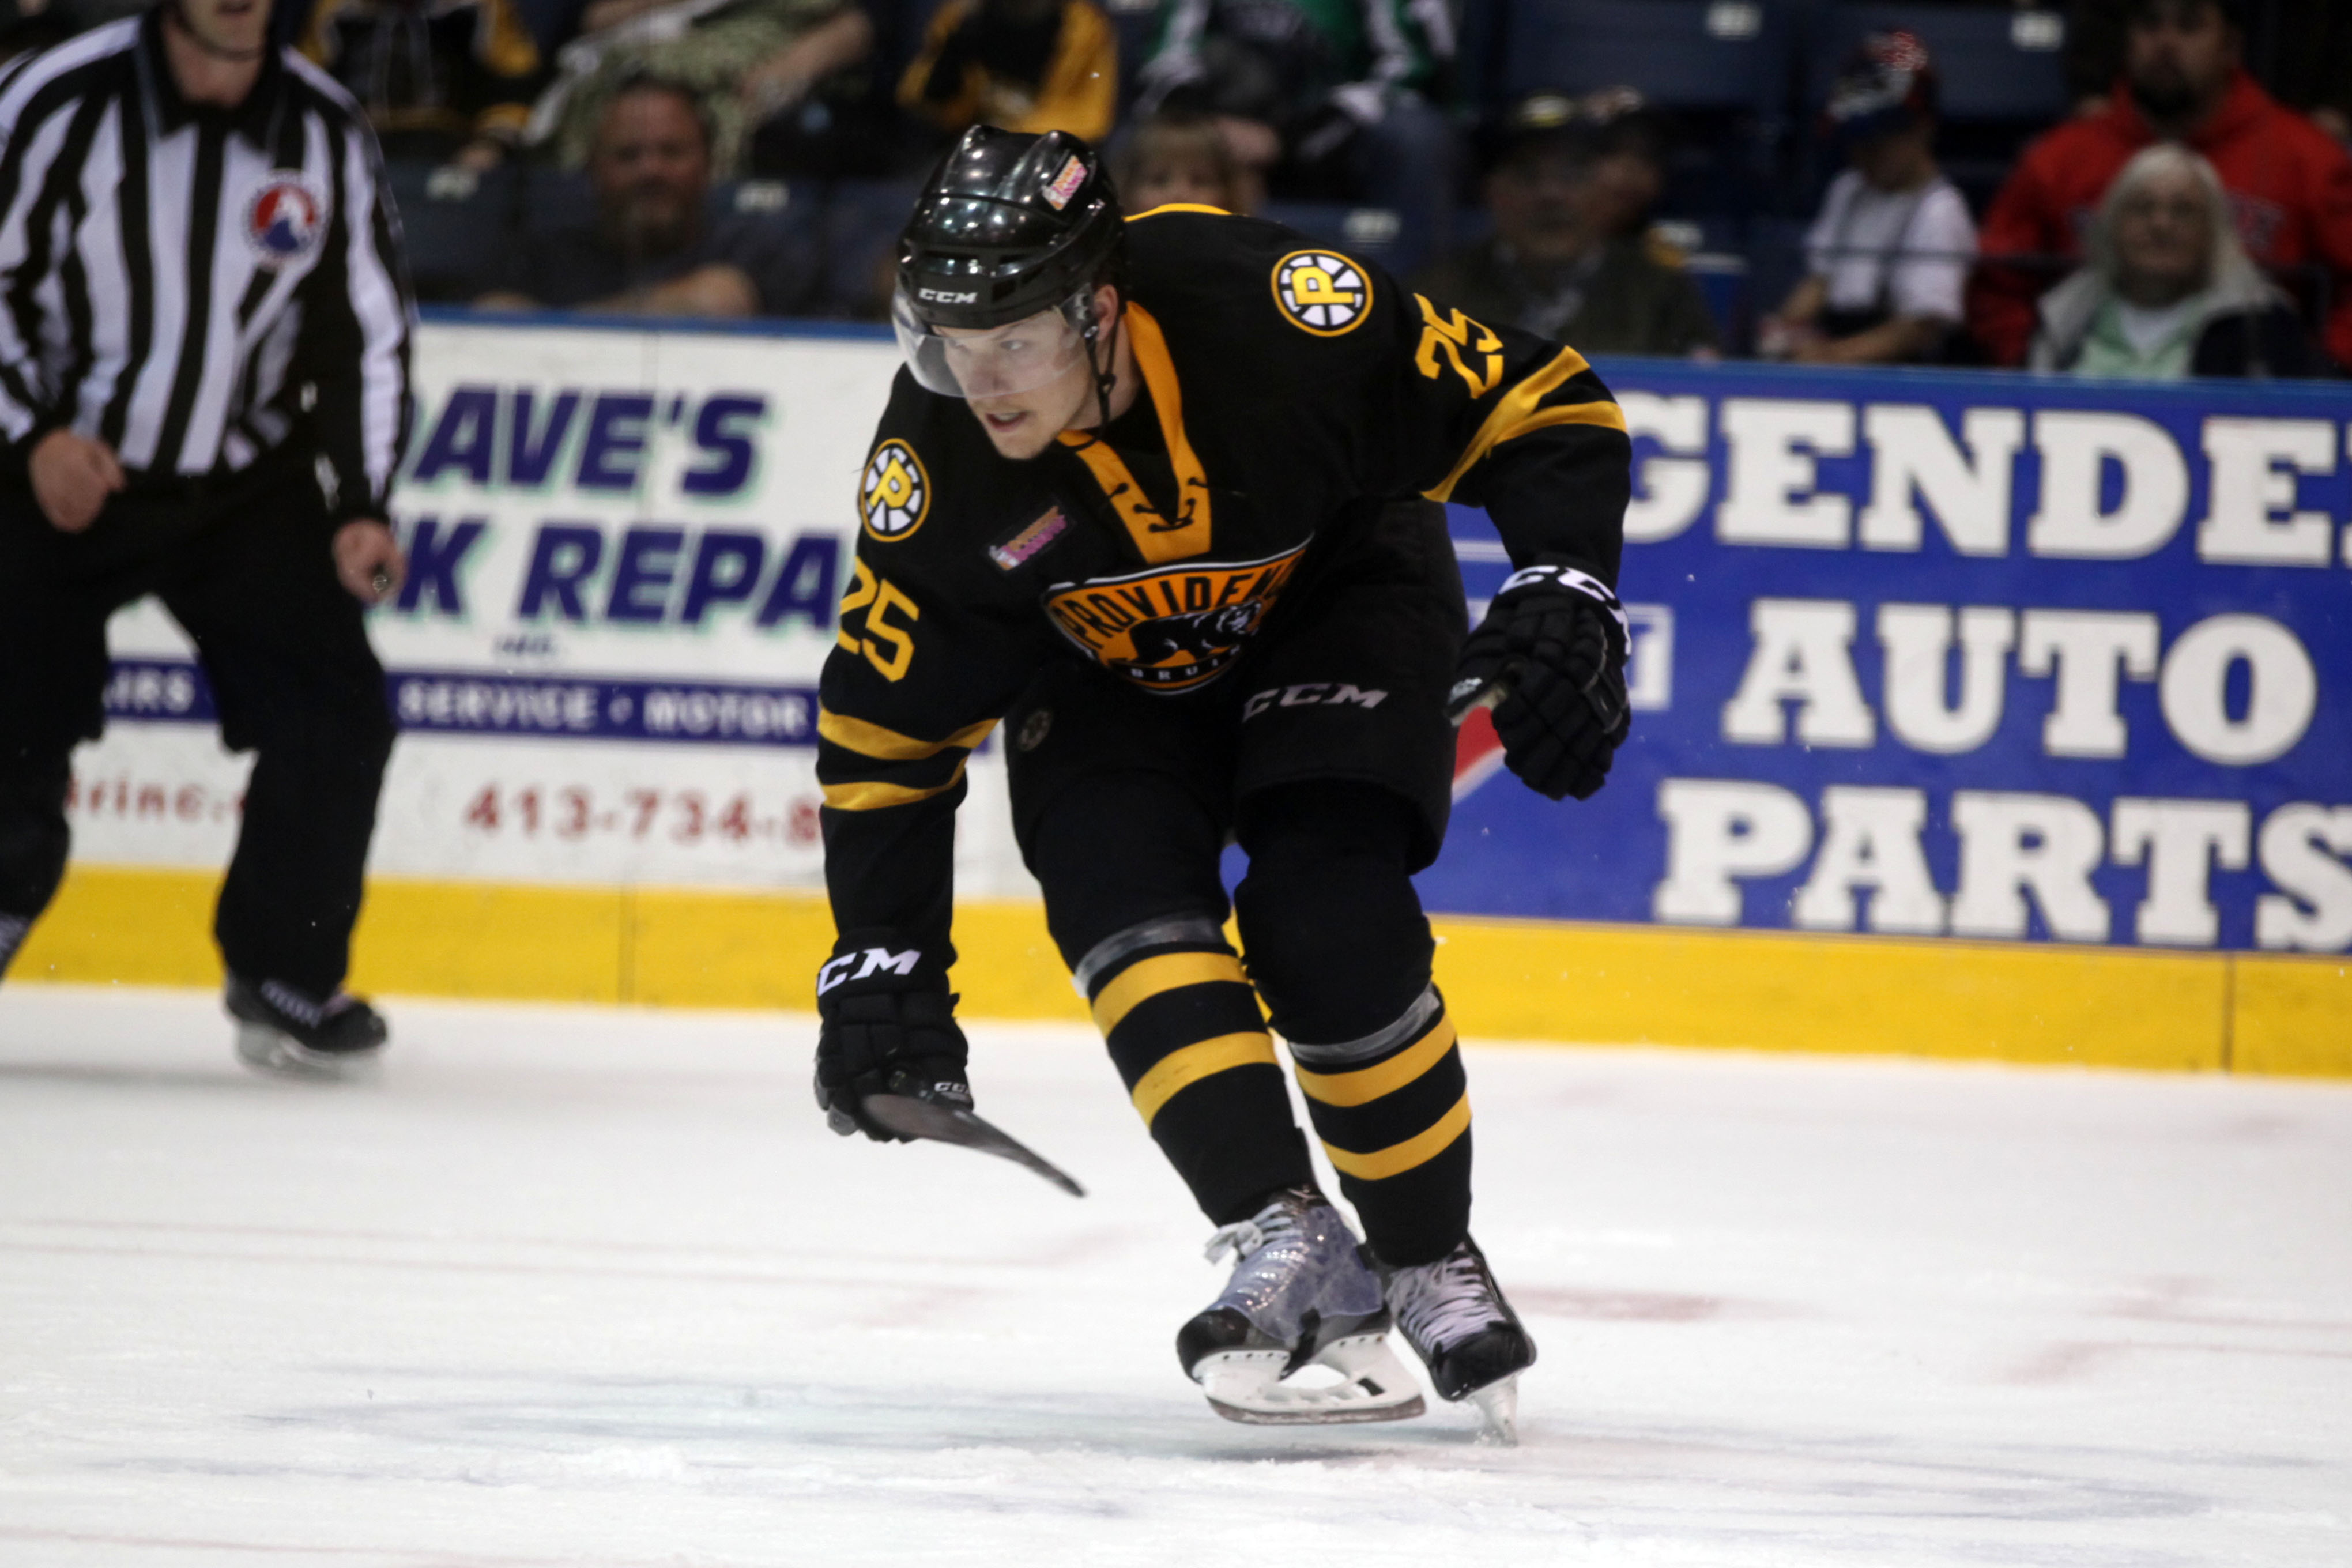 a29272c4d Boston Bruins  3rd year right wing Matt Fraser(25) accomplishes scoring an  overtime game-winner in the NHL and in the AHL (for minor league affiliate  ...